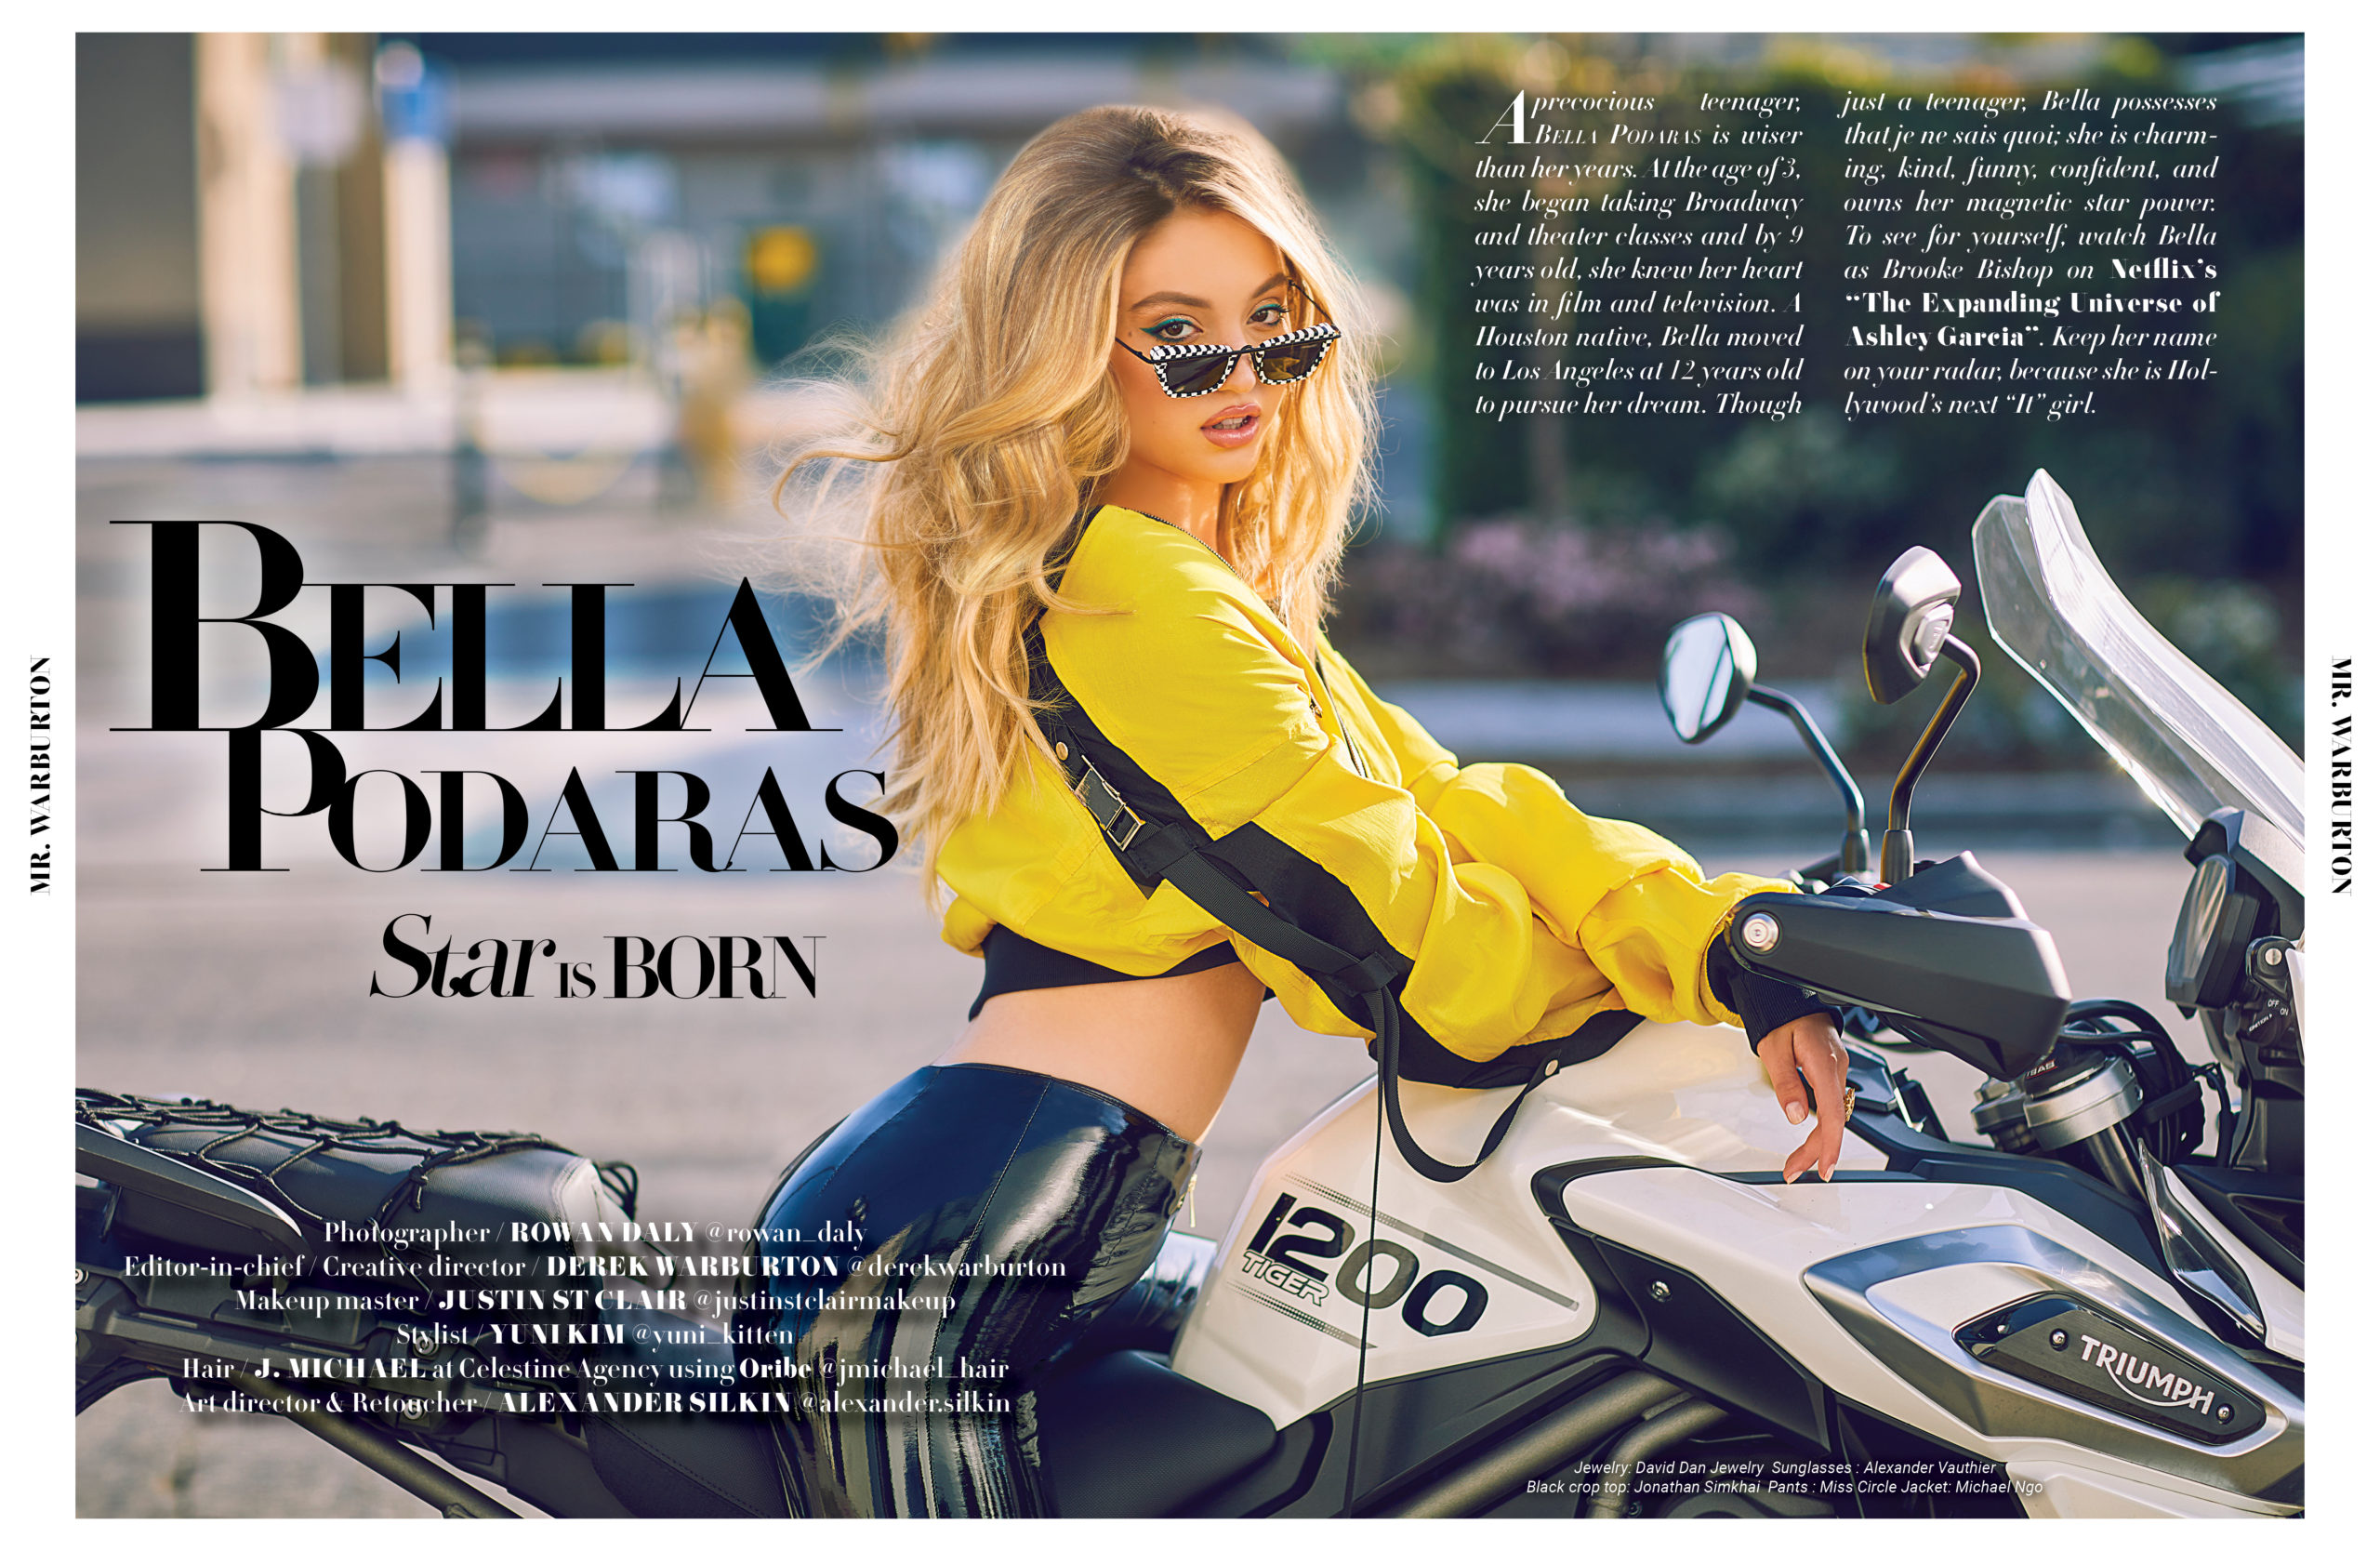 Mr. Warburton Magazine Bella Podaras Star is Born